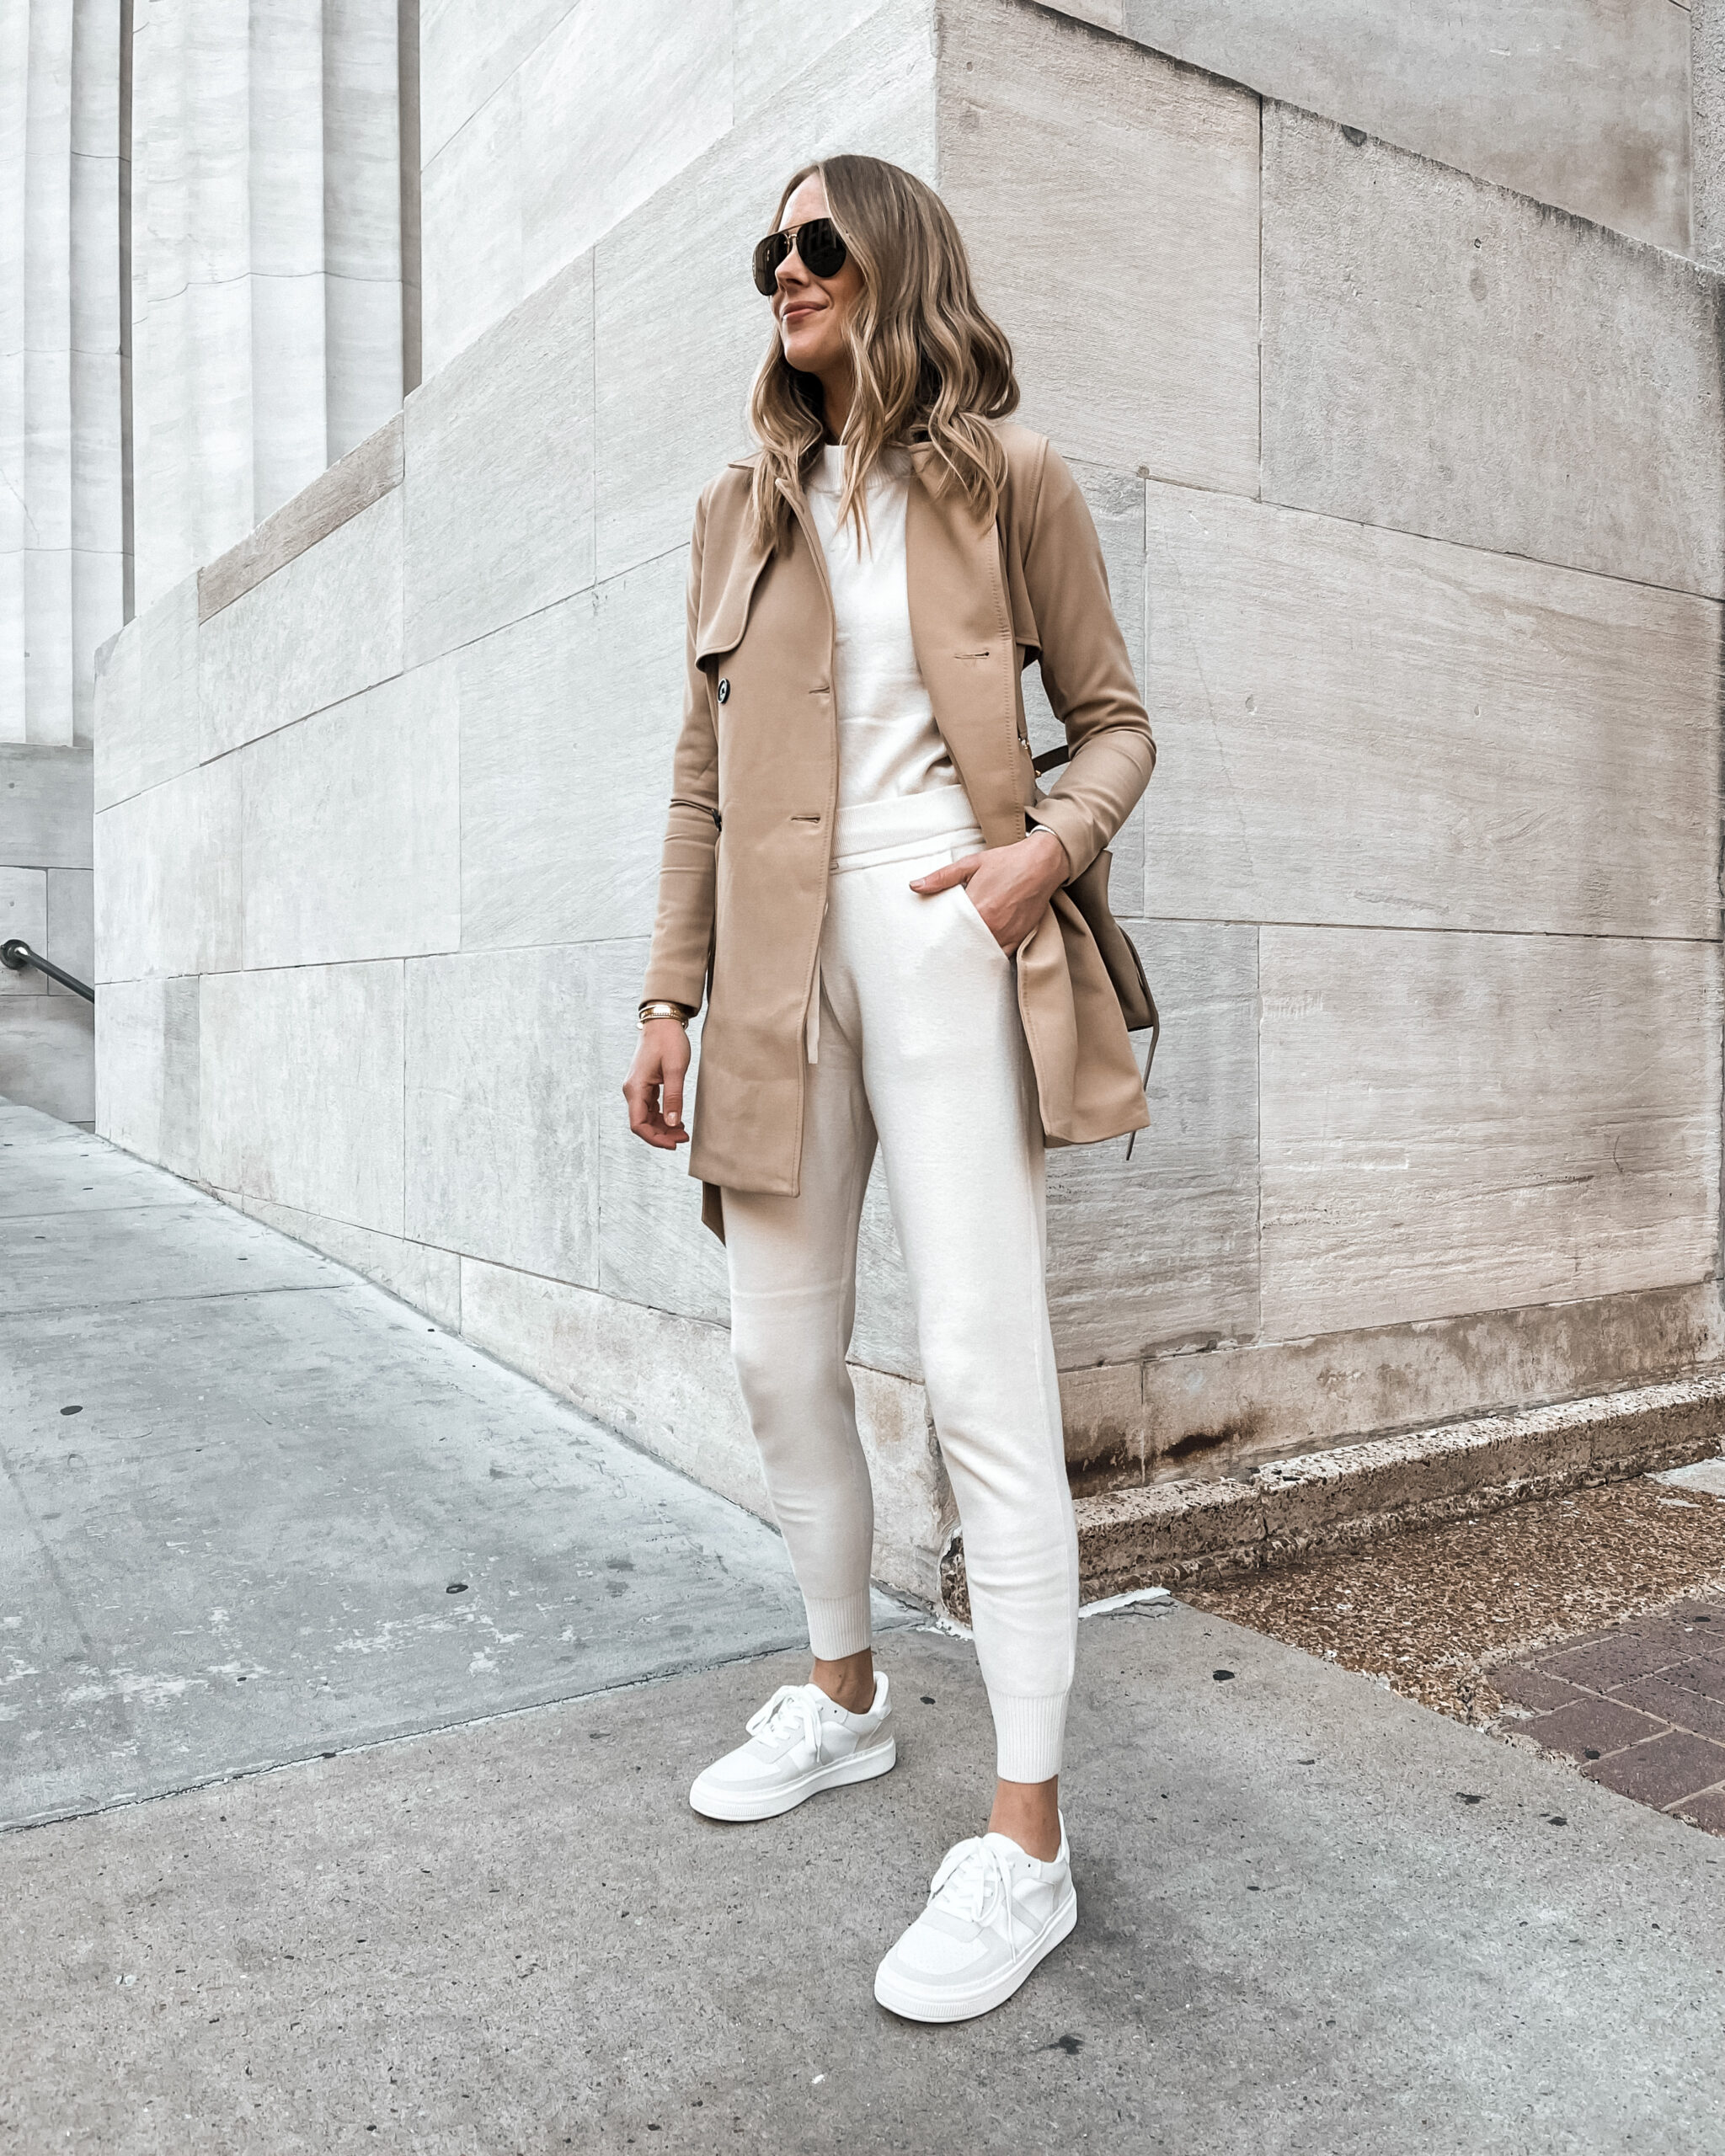 Fashion Jackson Wearing Abercombie Trench Coat Sweater Lounge Set White Sneakers Fall Weekend Outfit